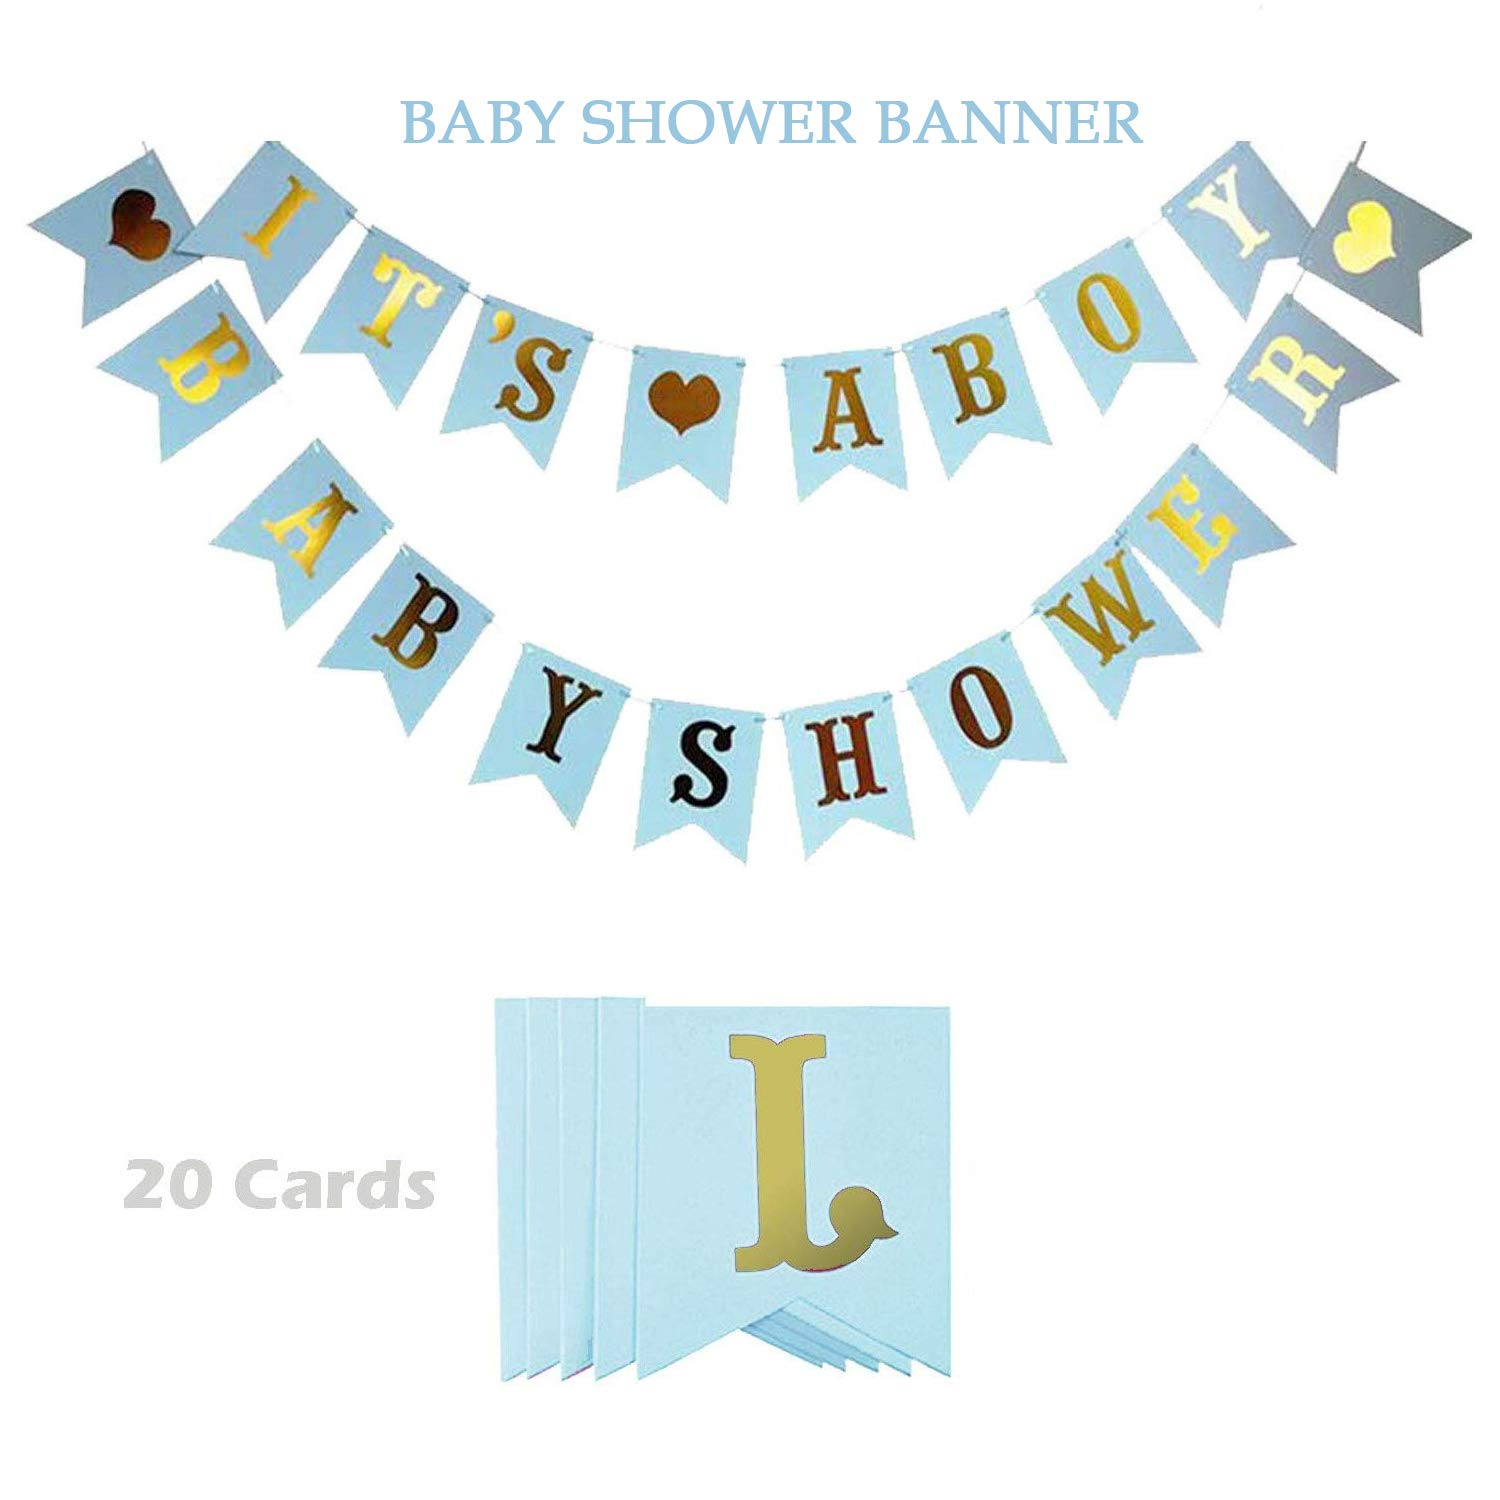 Baby Shower Decorations For Boy, Welcome Baby Party Decoration,Its a Boy Baby Shower Baby Shower Party Decoration With Boy Foil Letter Balloons,Flower Pom Poms,Paper Lanterns,Tassel(Blue,Gold,Light Blue)